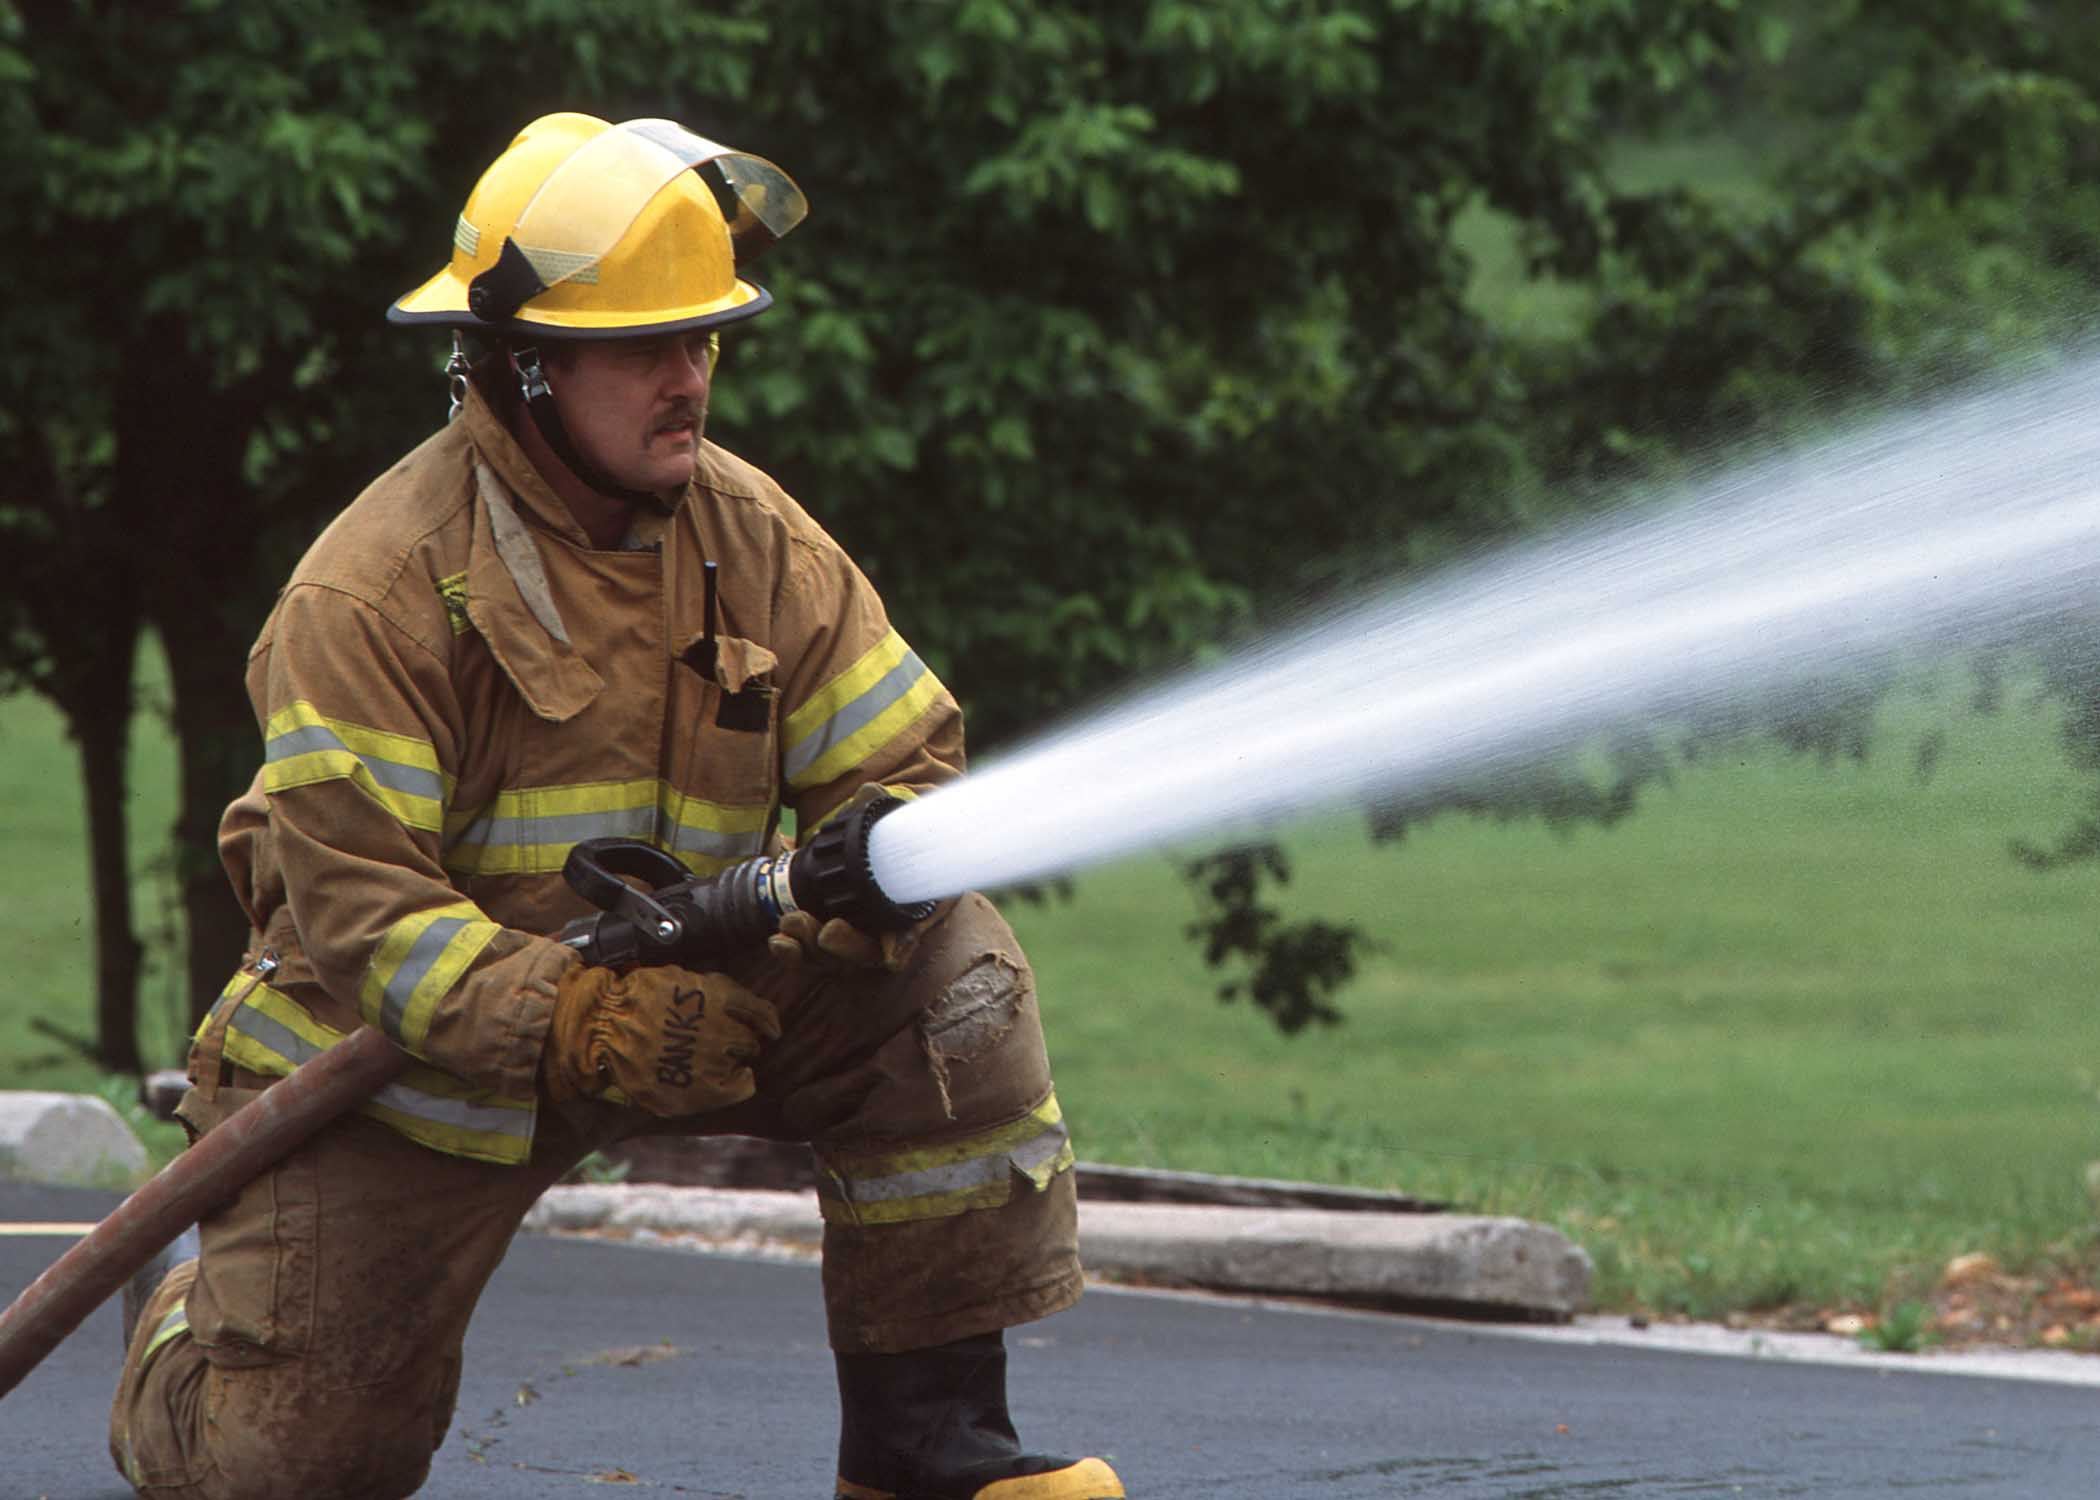 Fireman holding a firehose shooting water. (NRCS|USDA)